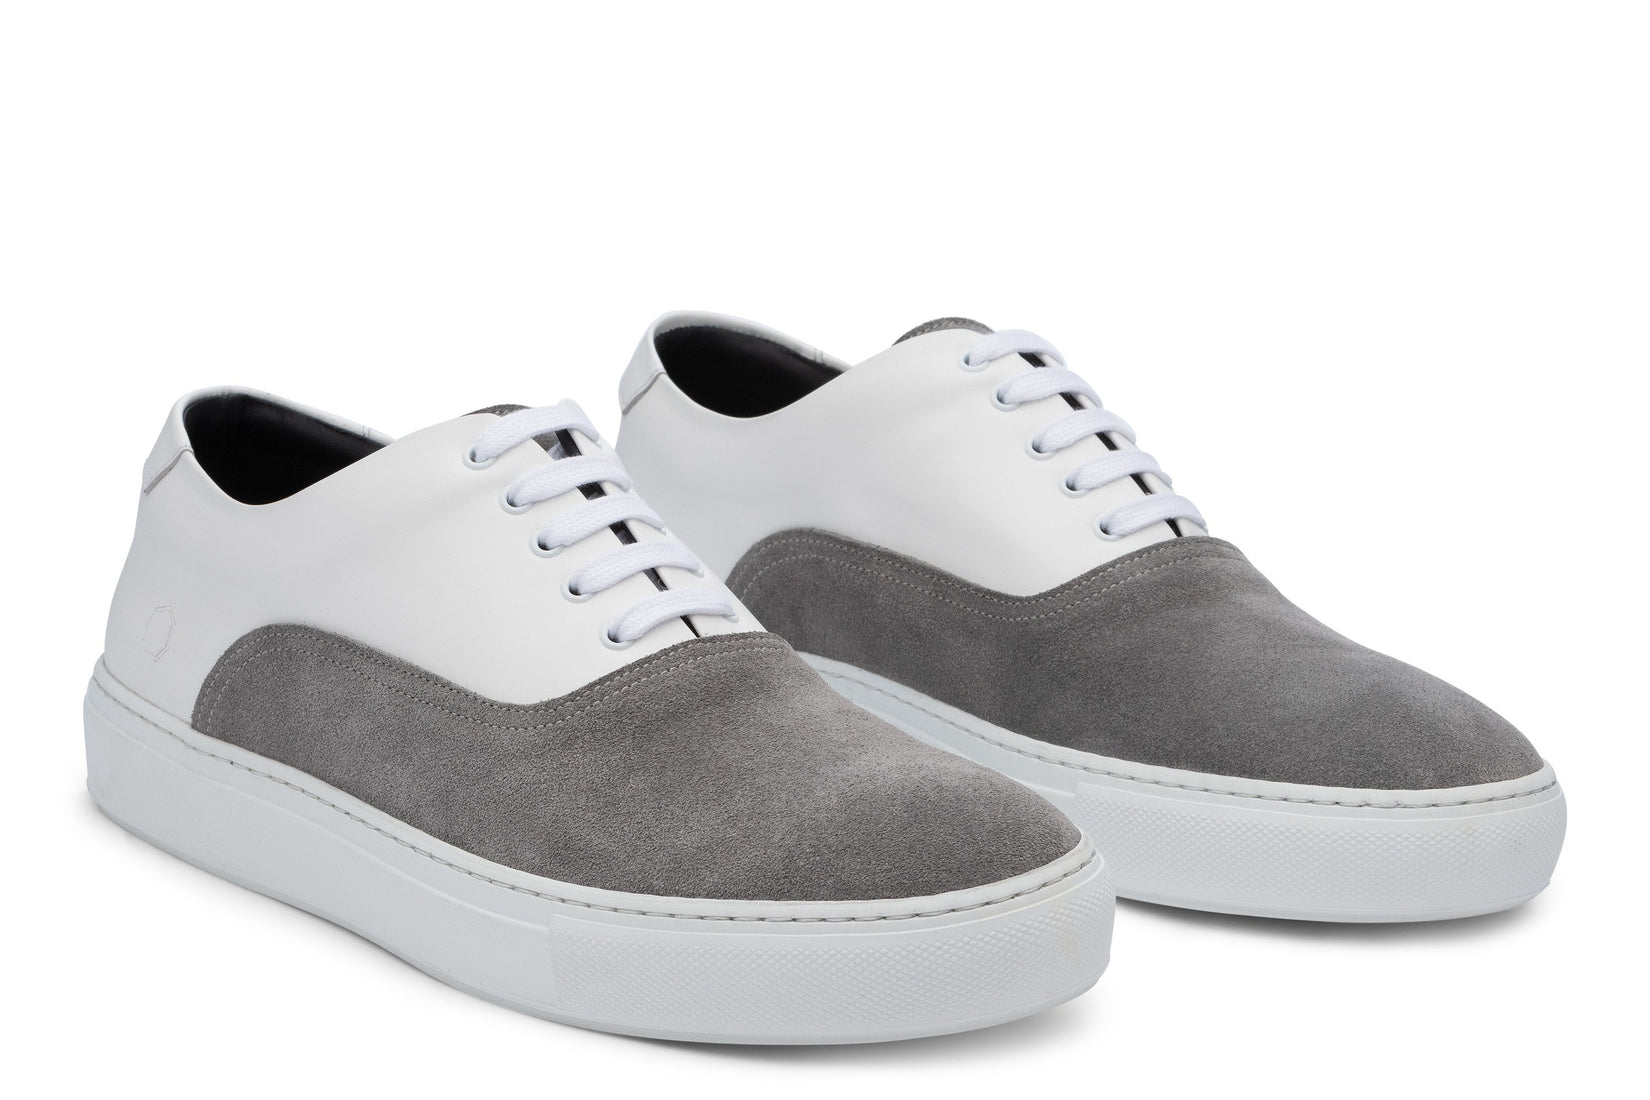 Sunday Two-Tone Skater Sneaker in White/Grey